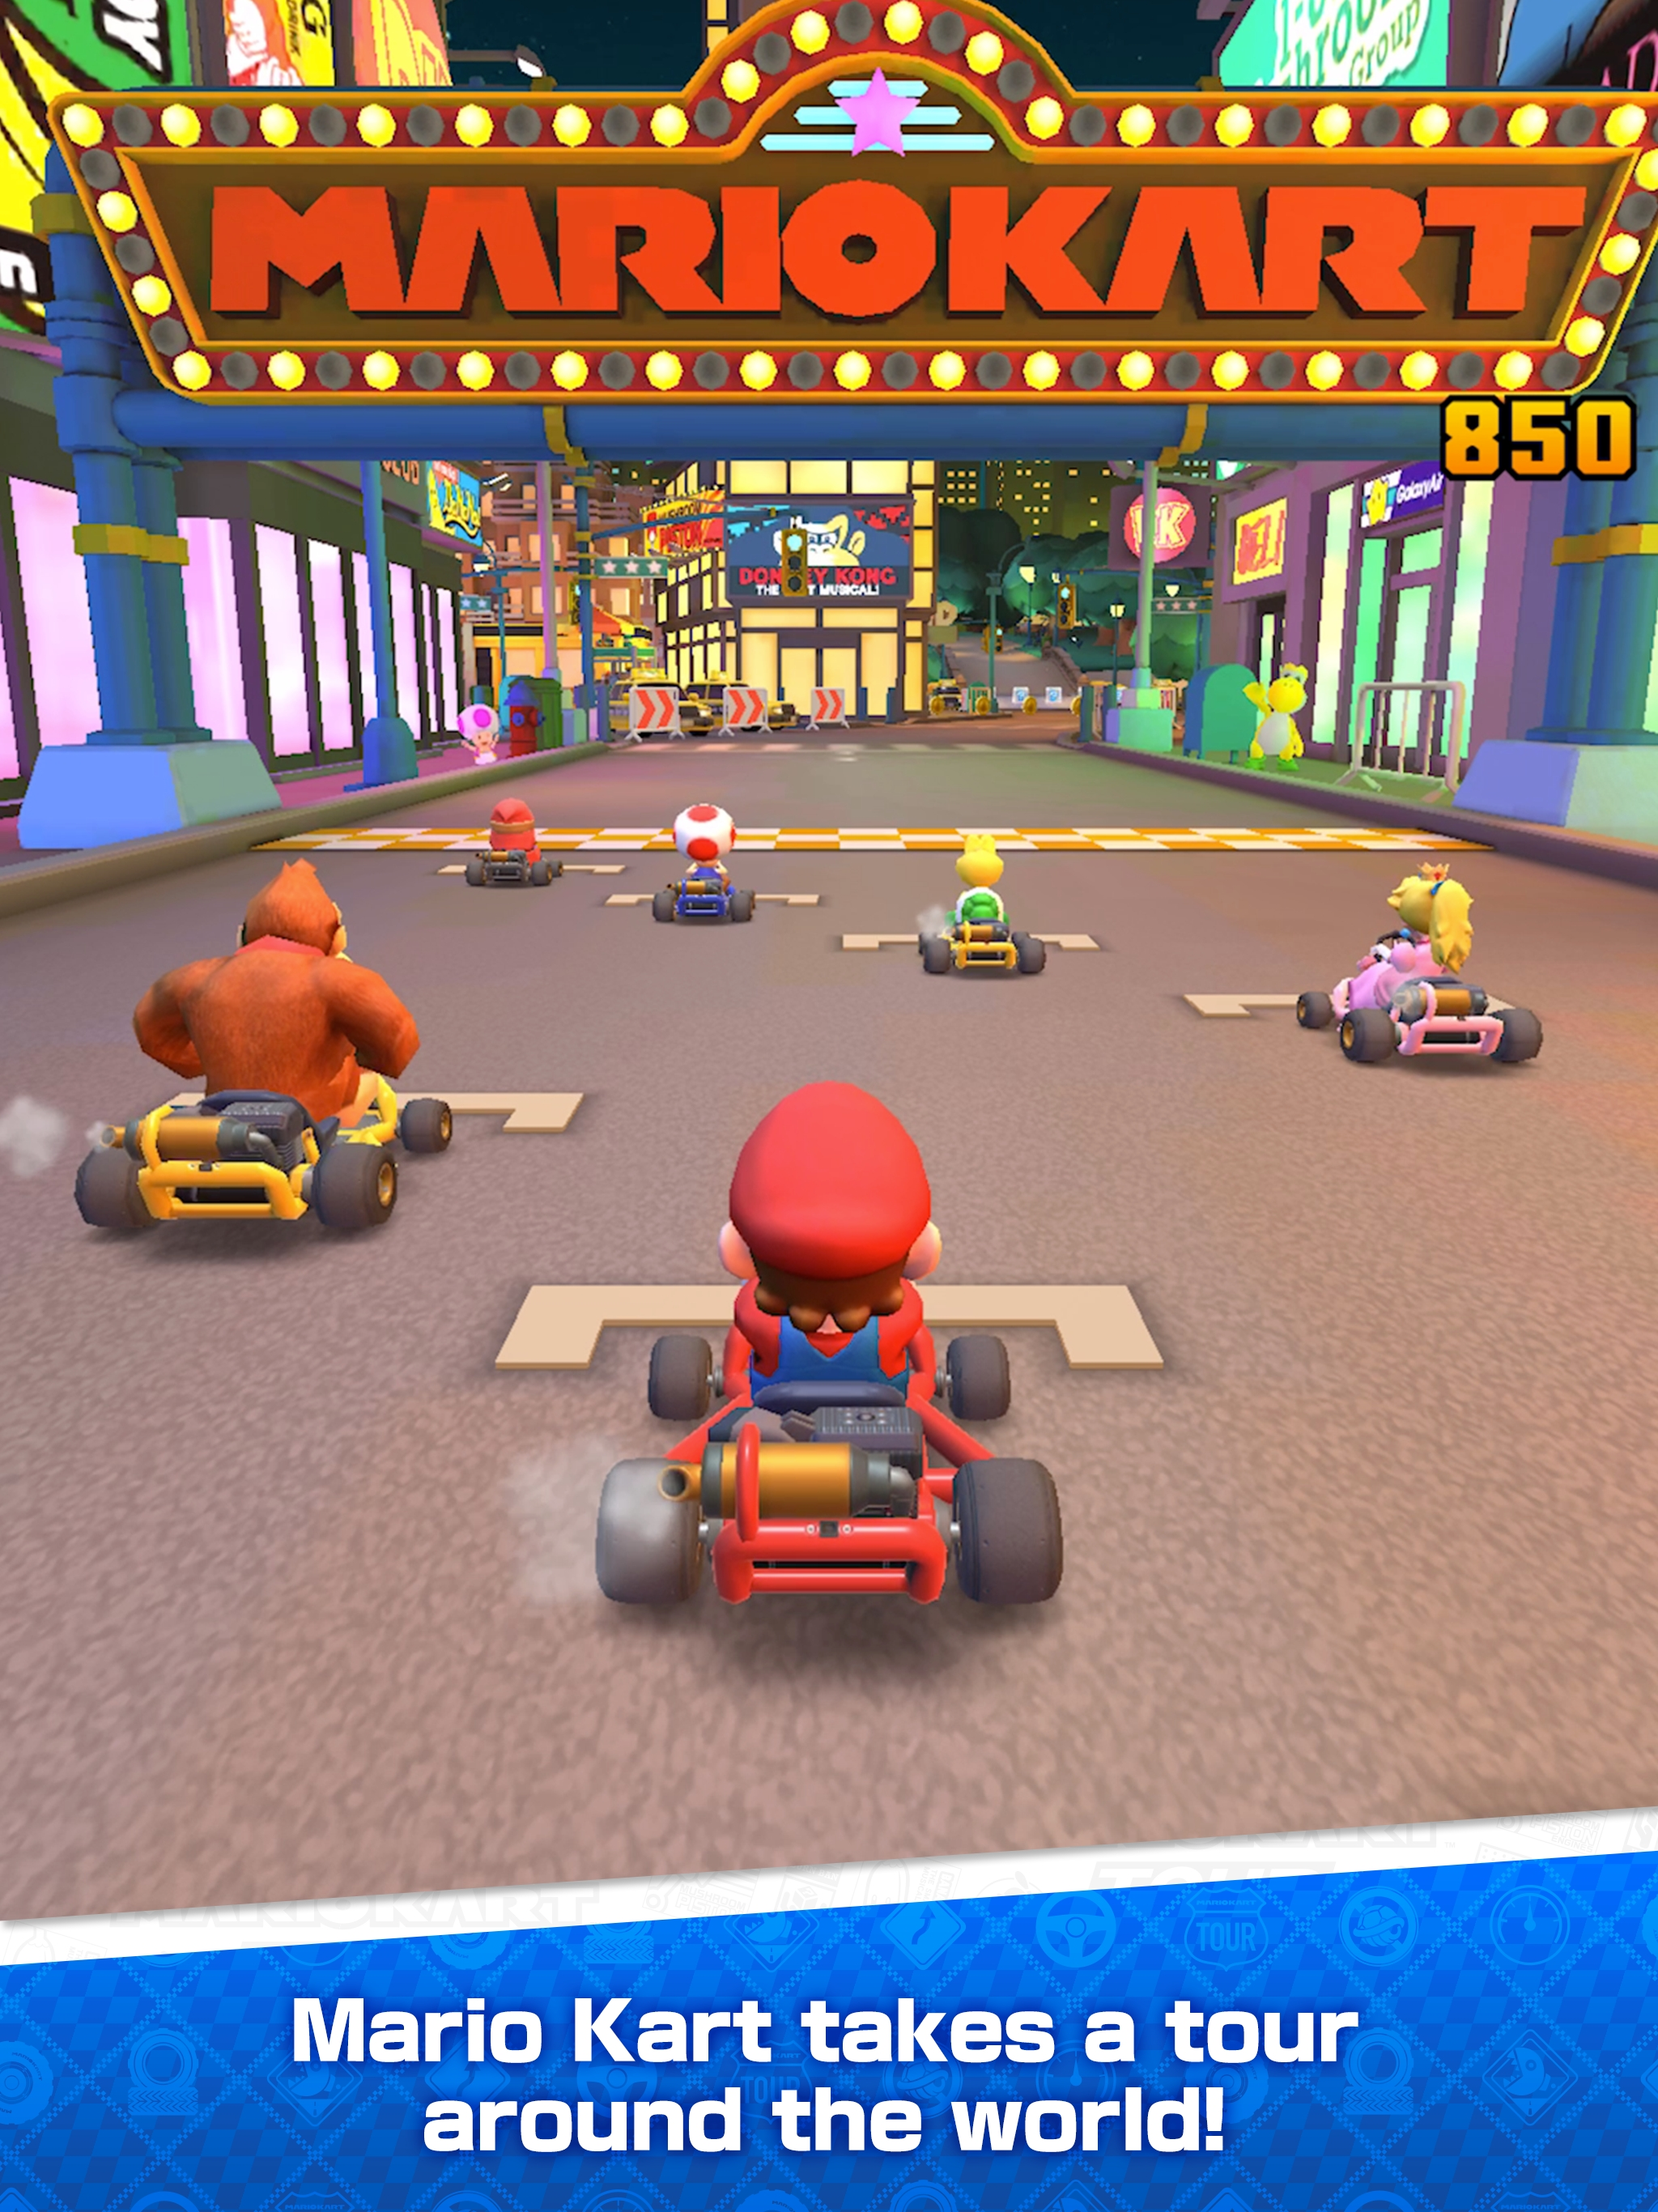 Mario Kart Tour Races Onto iOS and Android Devices on Sept